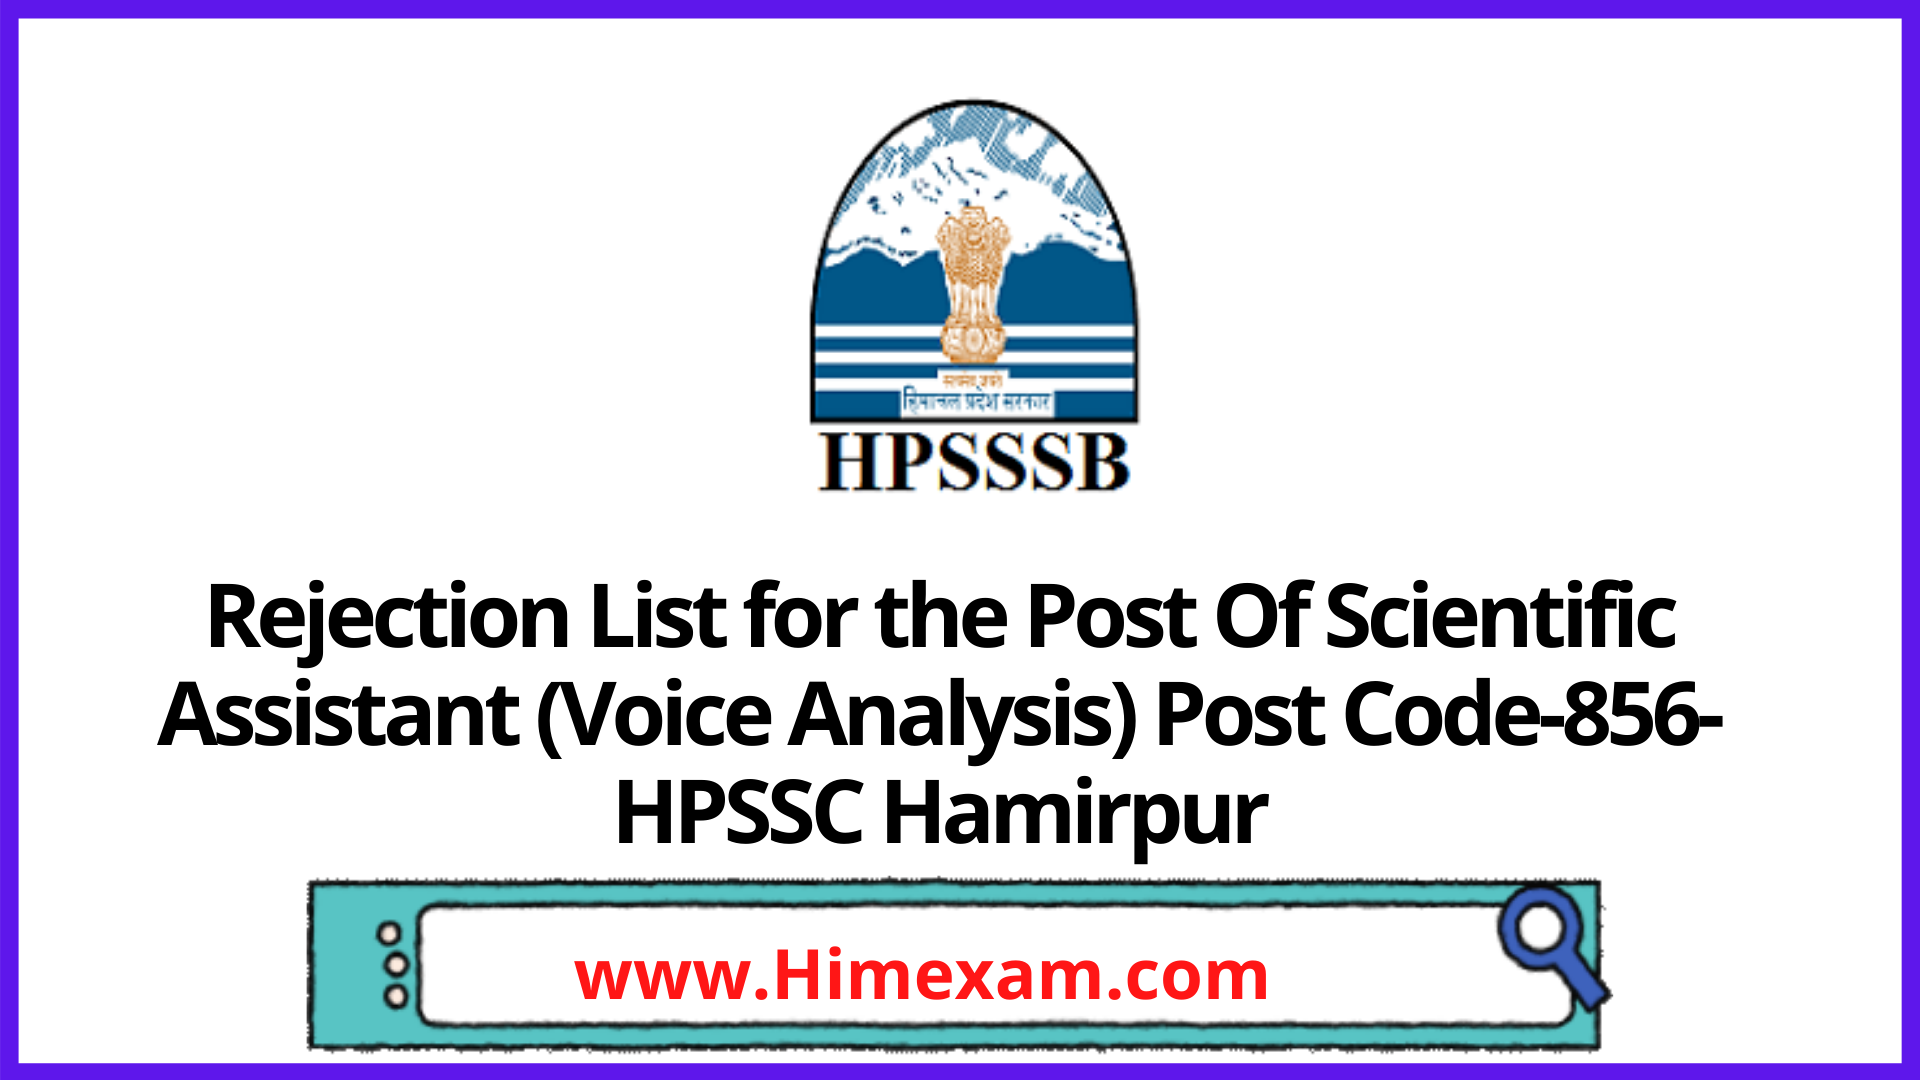 Rejection List for the Post Of Scientific Assistant (Voice Analysis) Post Code-856-HPSSC Hamirpur